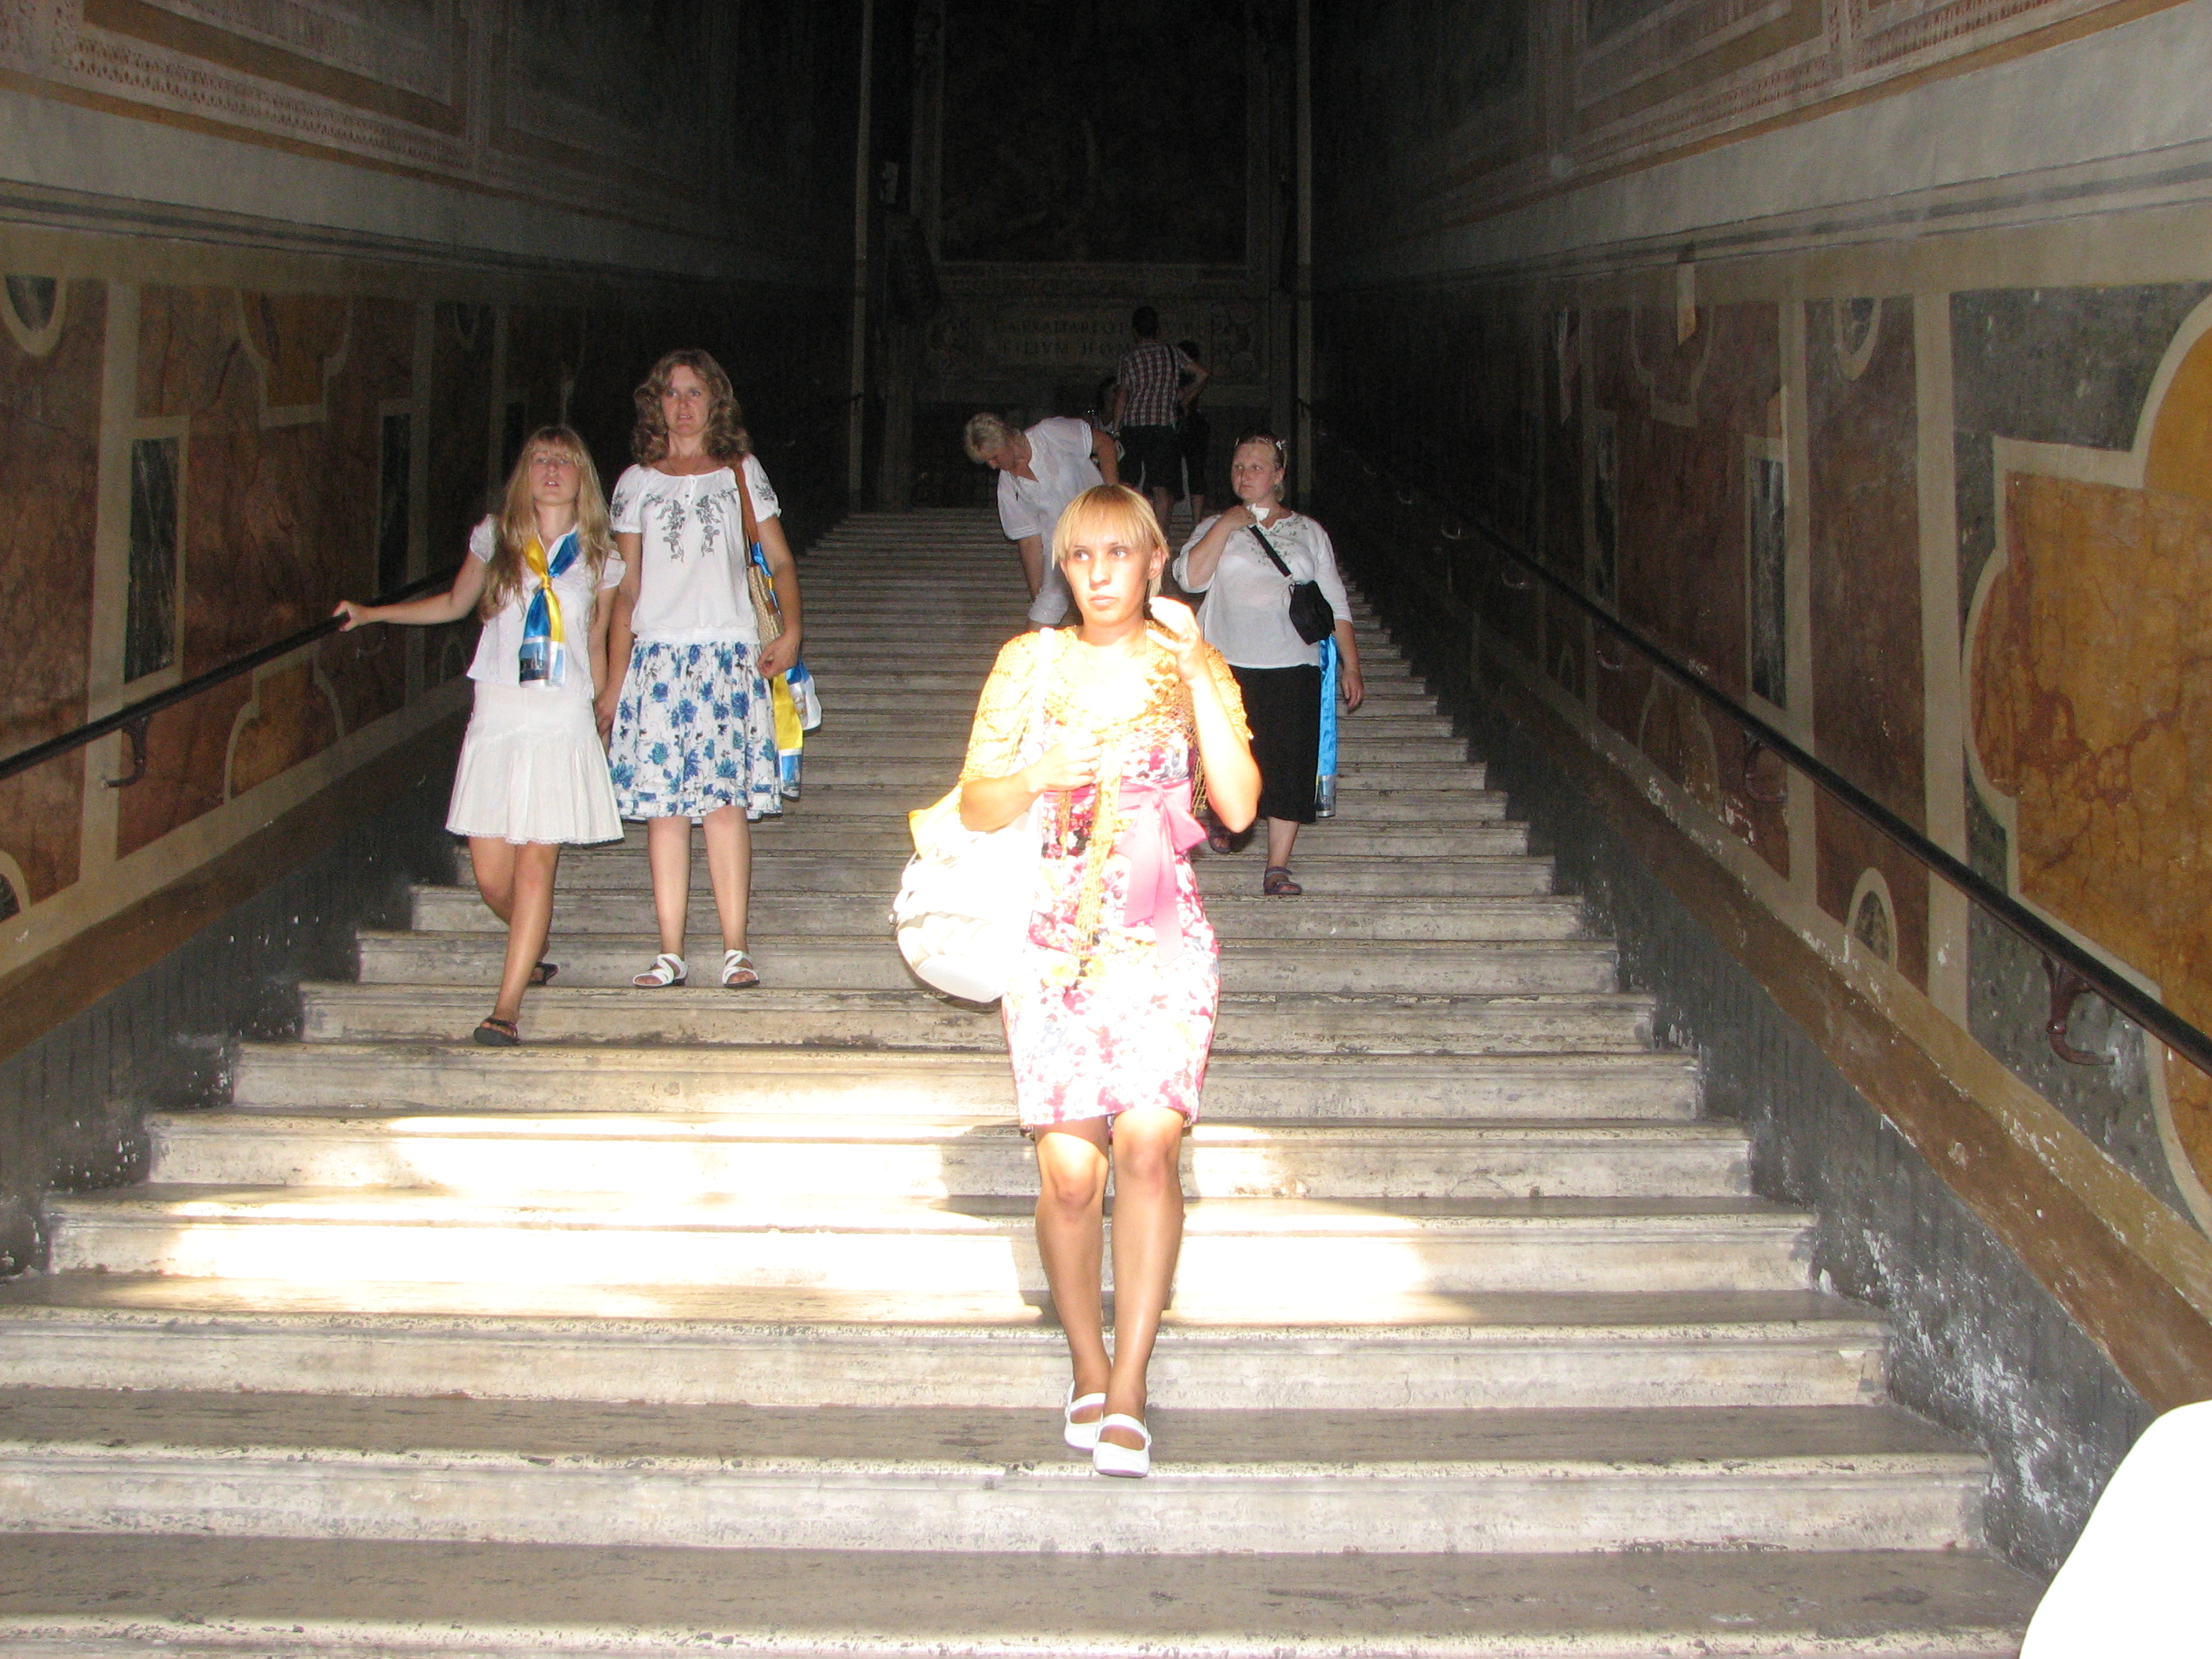 People on stairs (brought from the Holy Land) on which Jesus was coming to Pilate. Rome, Italy, European Union, August 2011, picture 28.